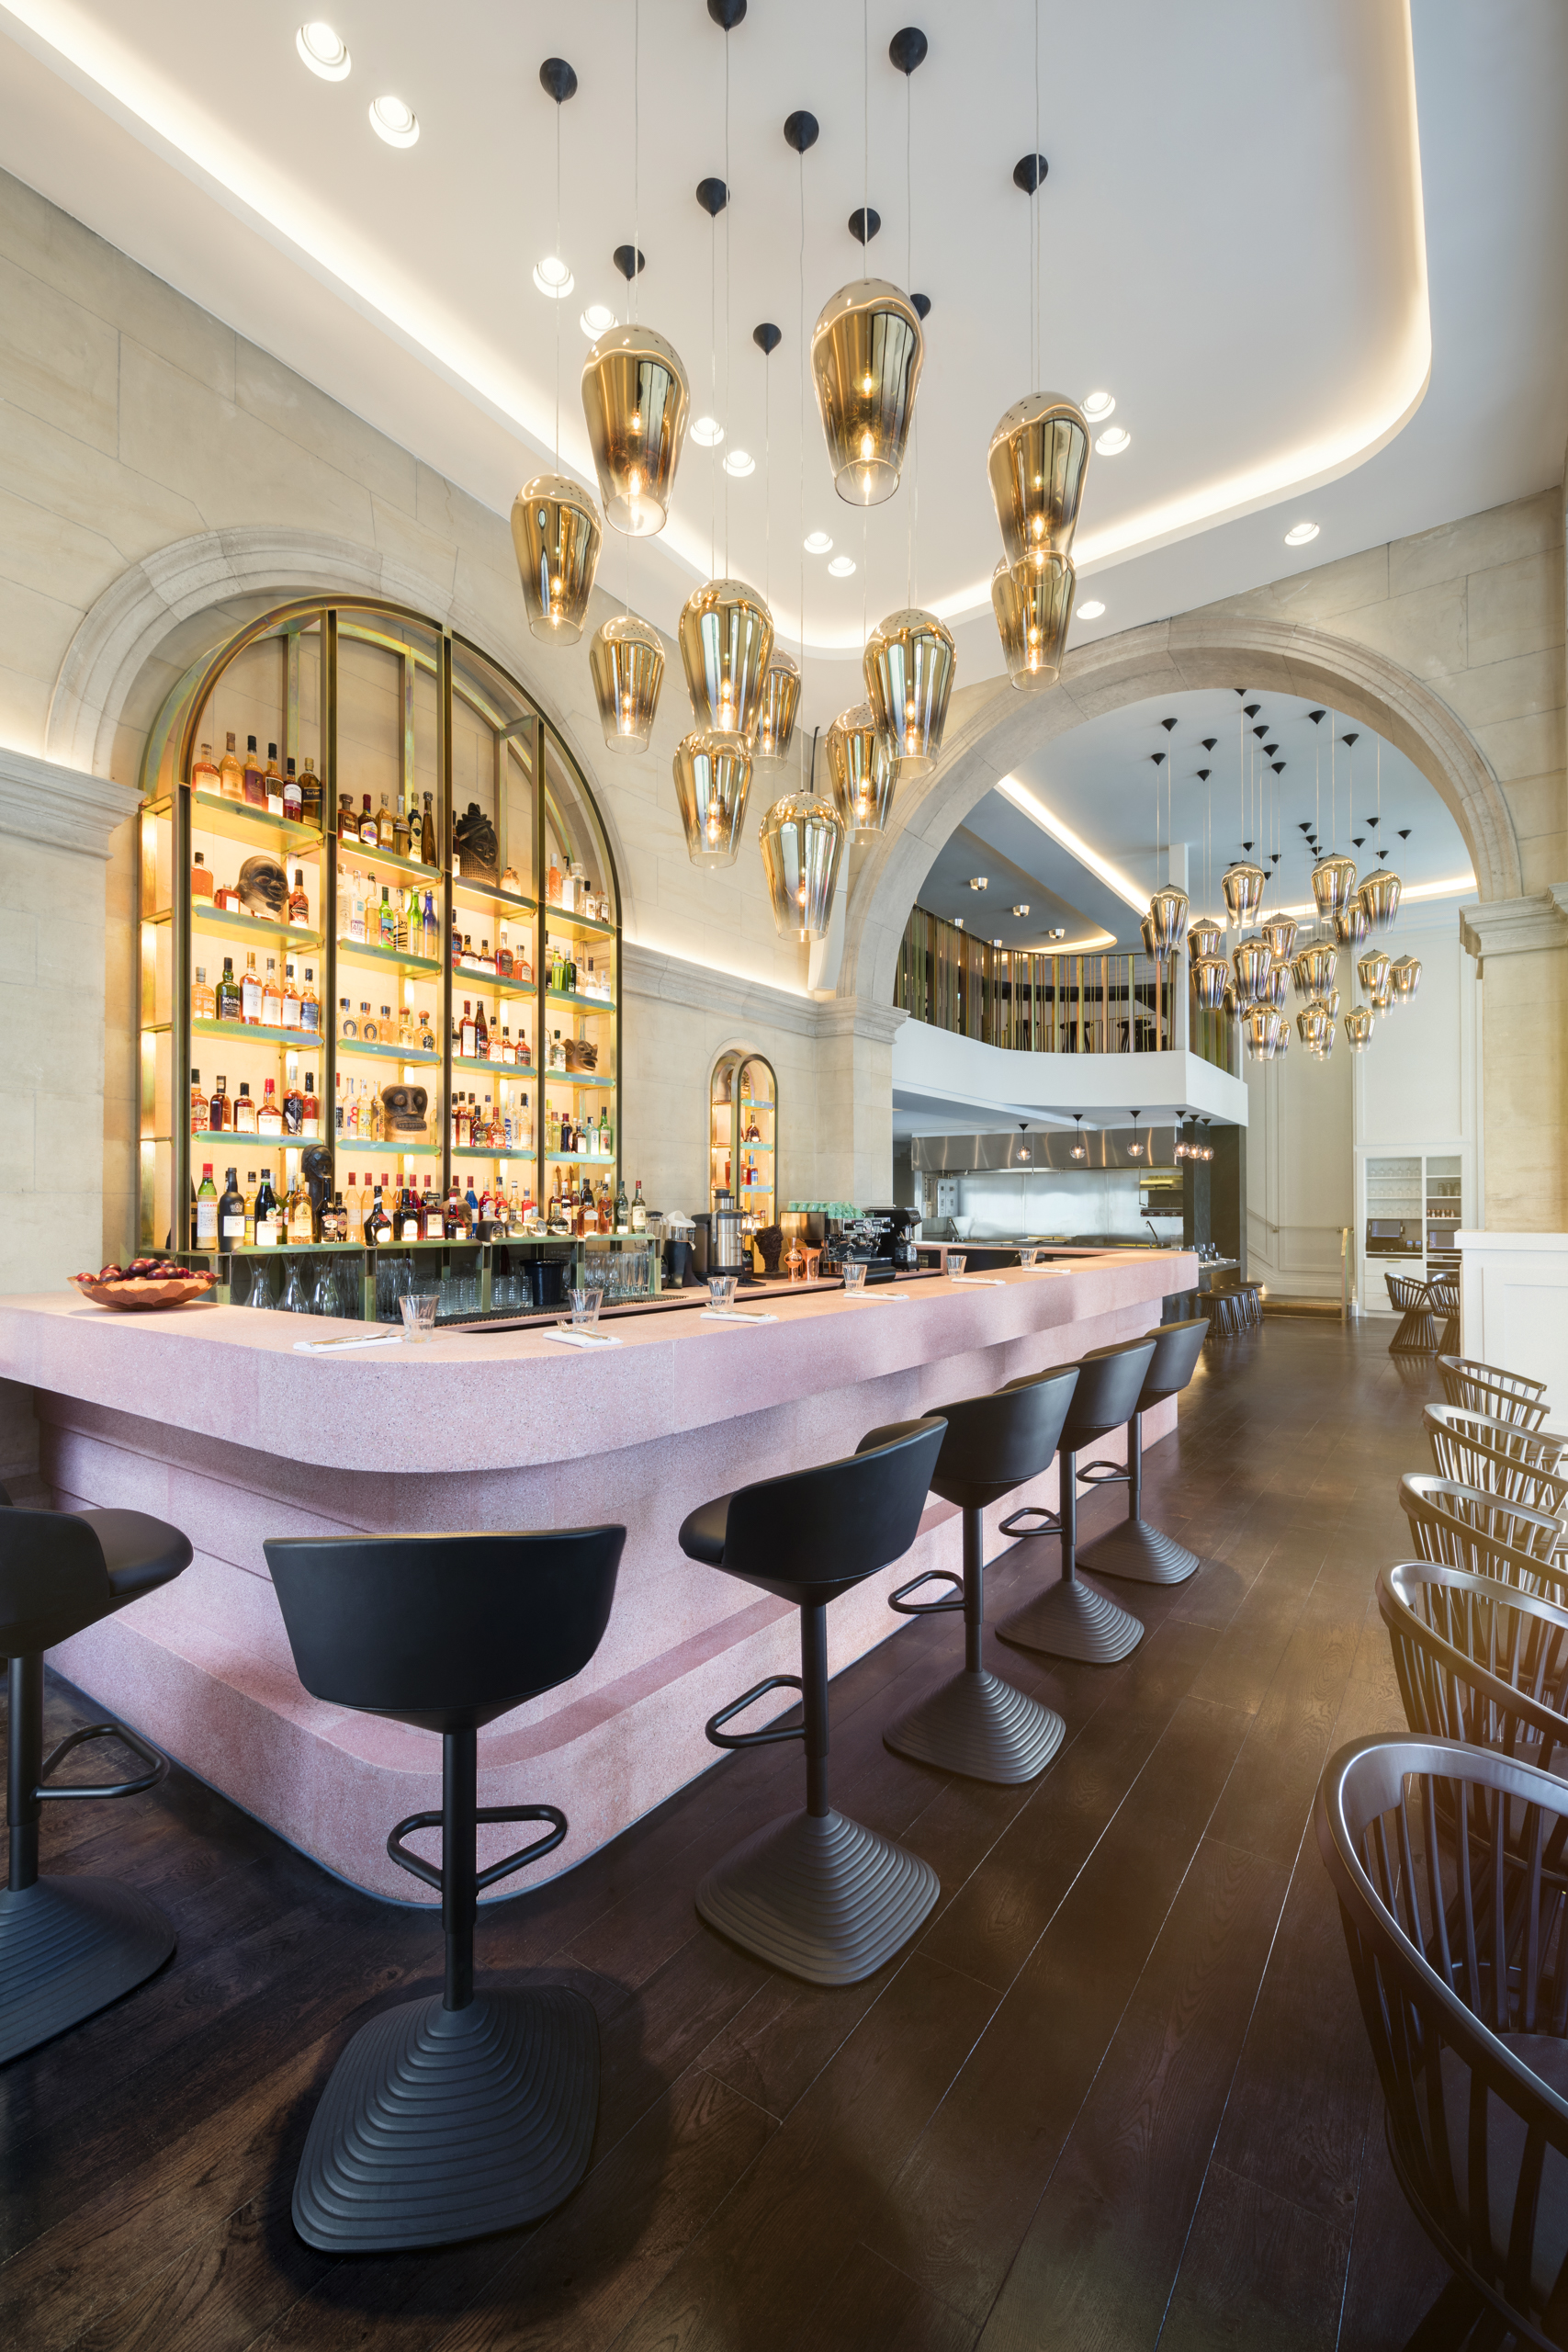 Tom dixon designs interiors for new london restaurant for Interior designs london